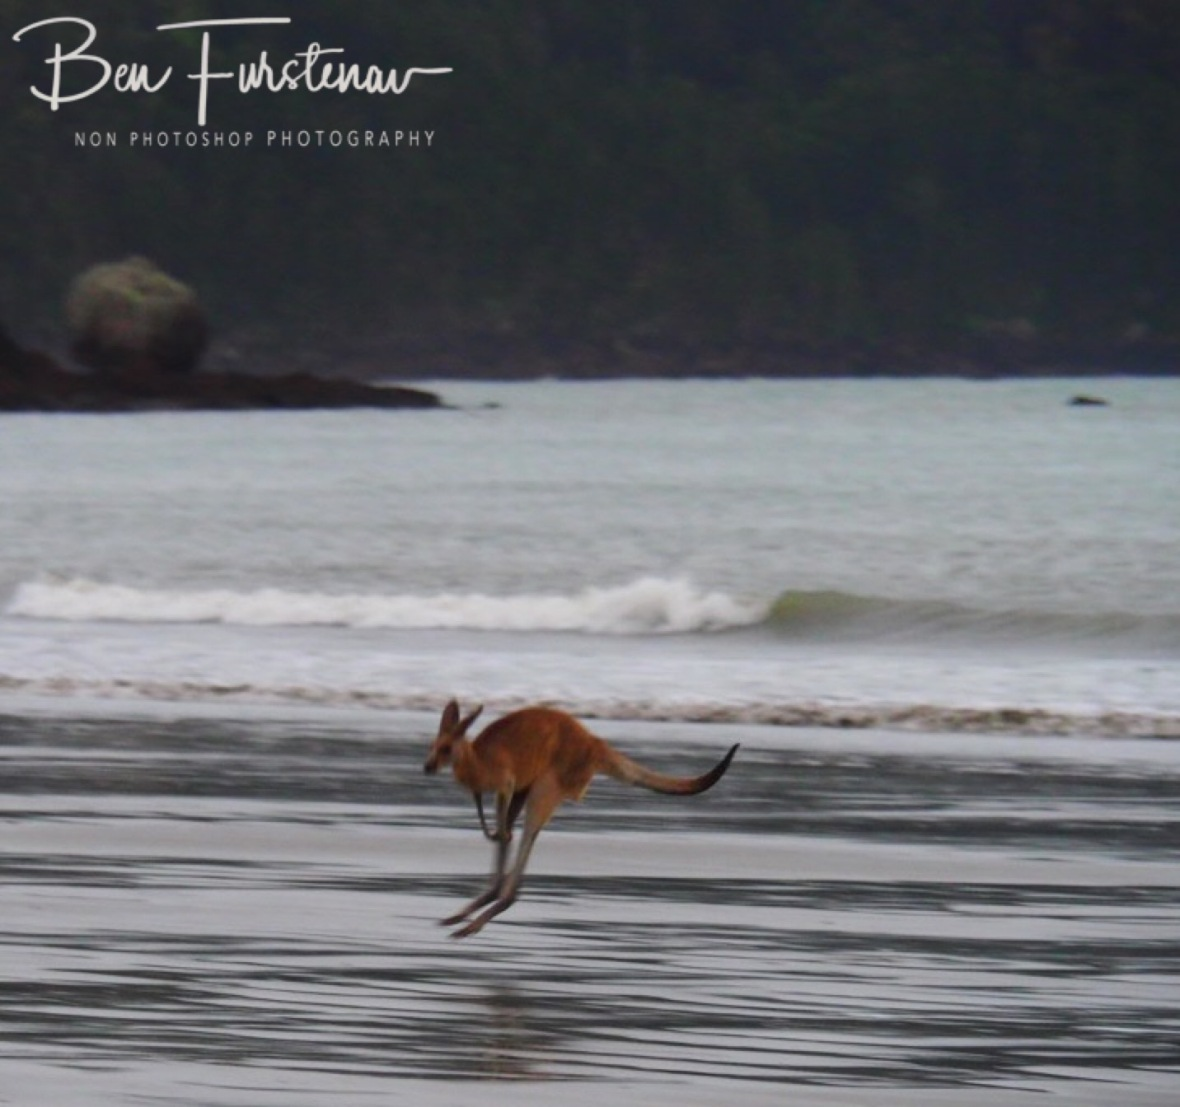 Skipping in perfect locomotion at Cape Hillsborough, Queensland, Australia